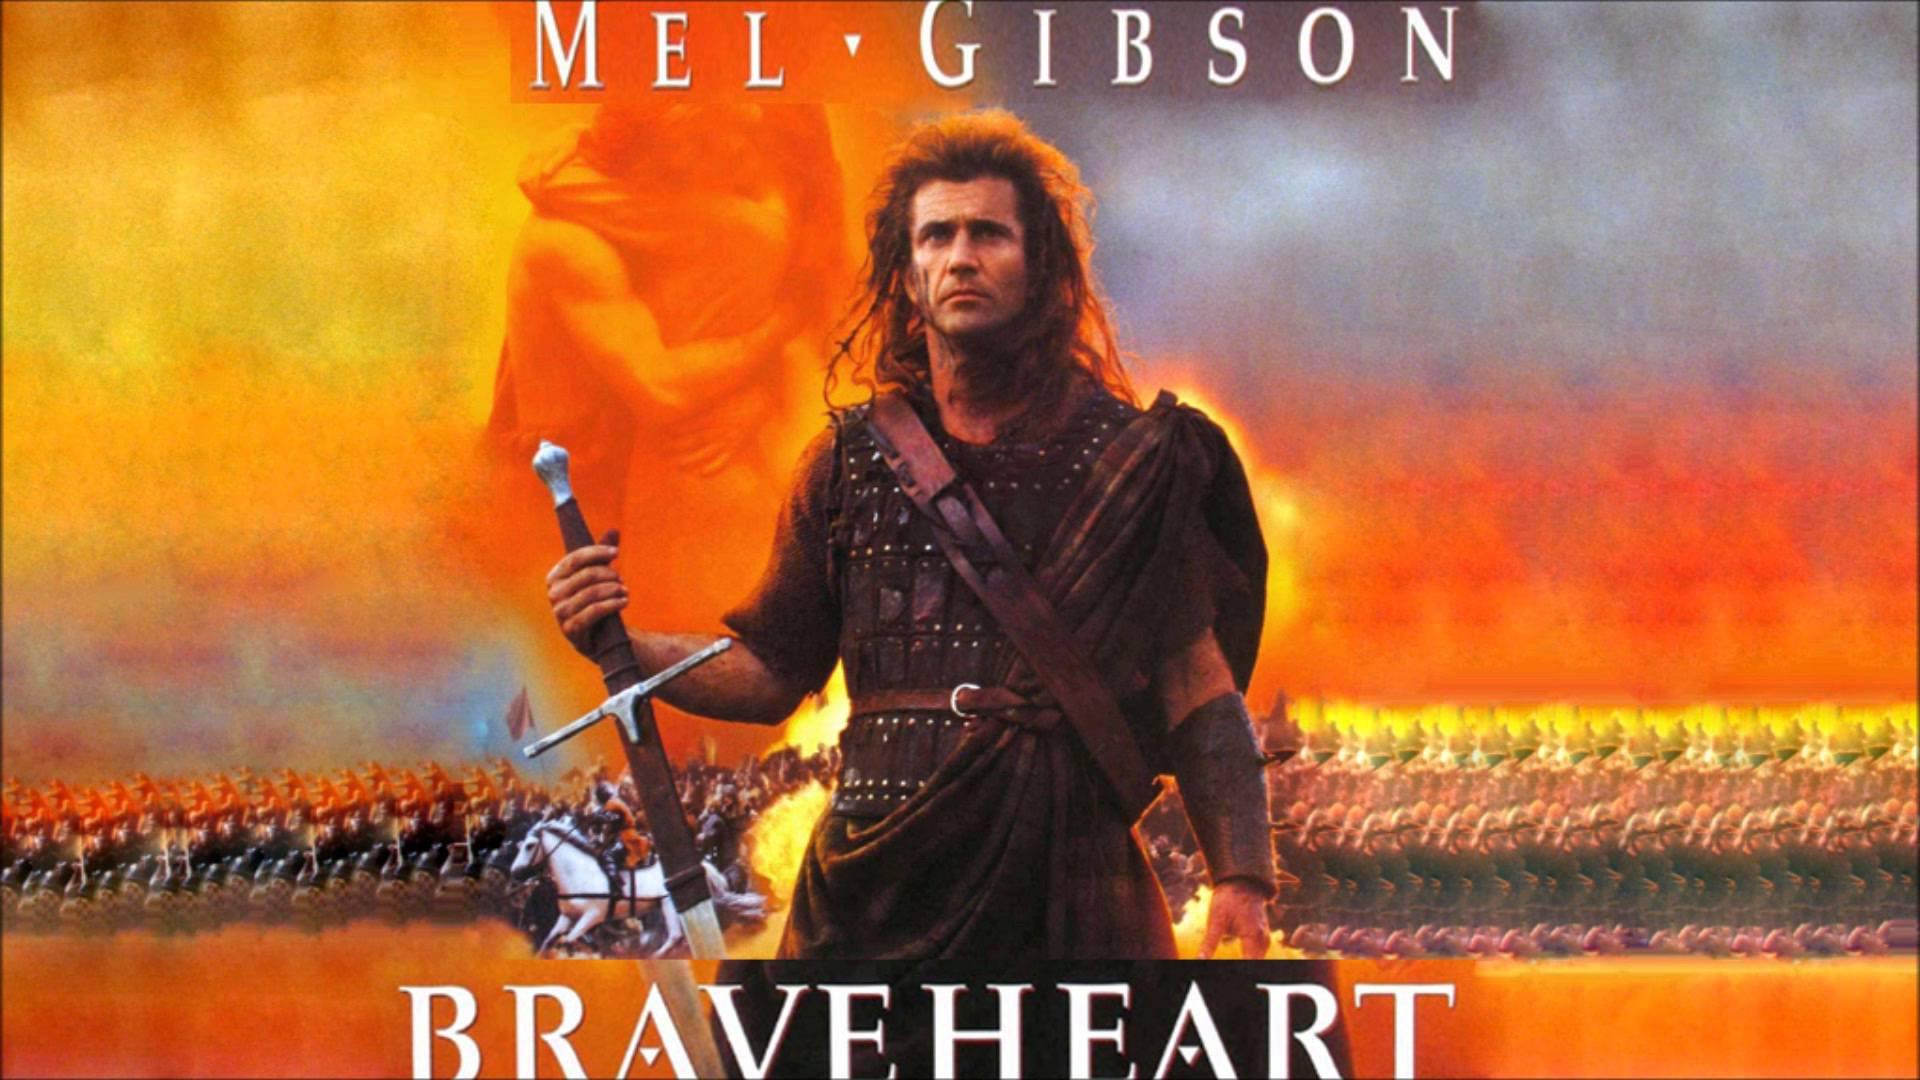 BRAVEHEART 1995: LIVE IN PRESENT, MAKE IT SO BEAUTIFUL